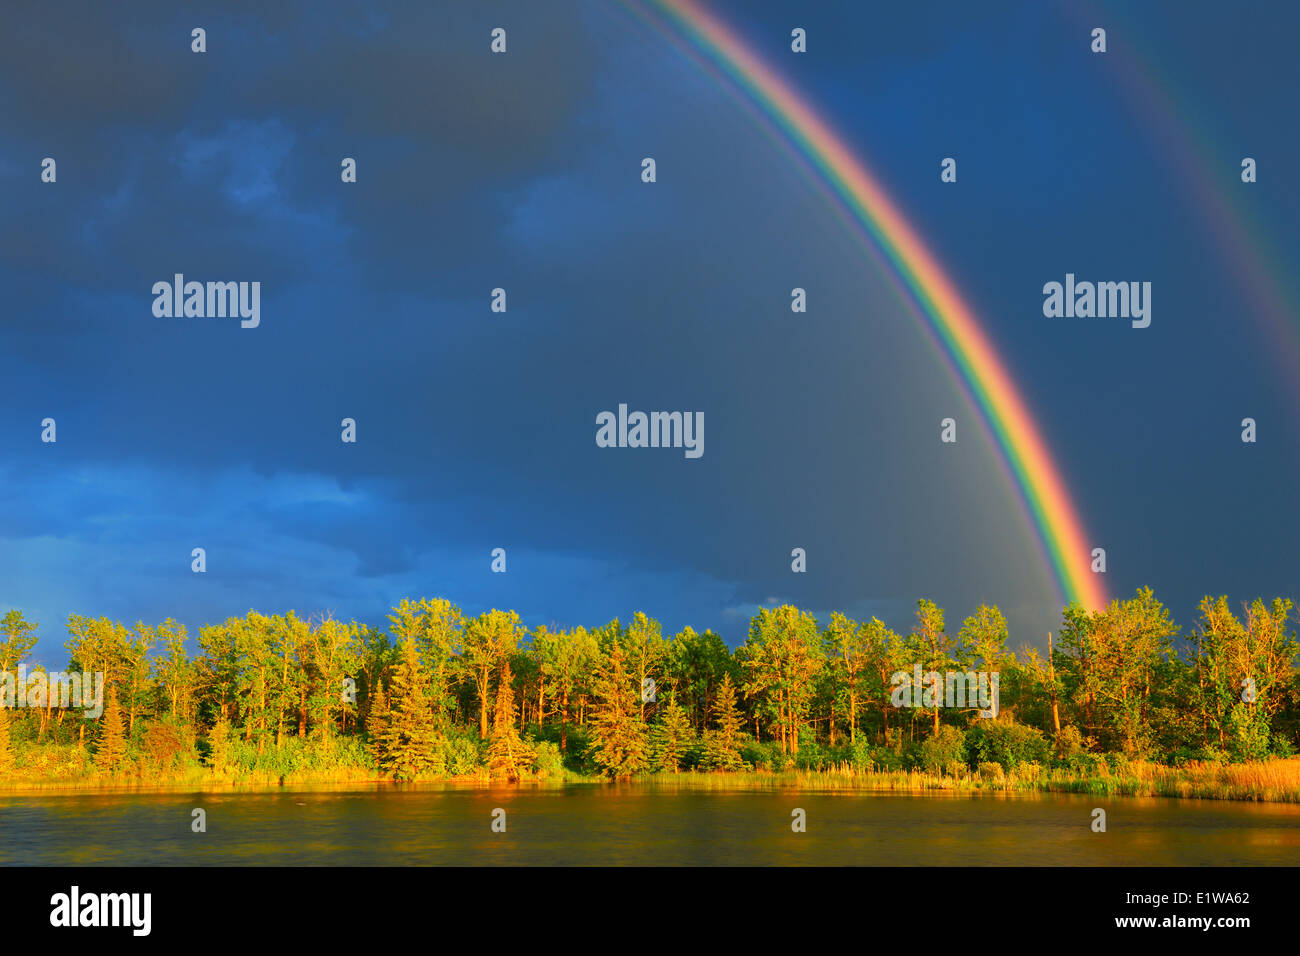 Rainbow and forest, Yorkton, Saskatchewan, Canada - Stock Image